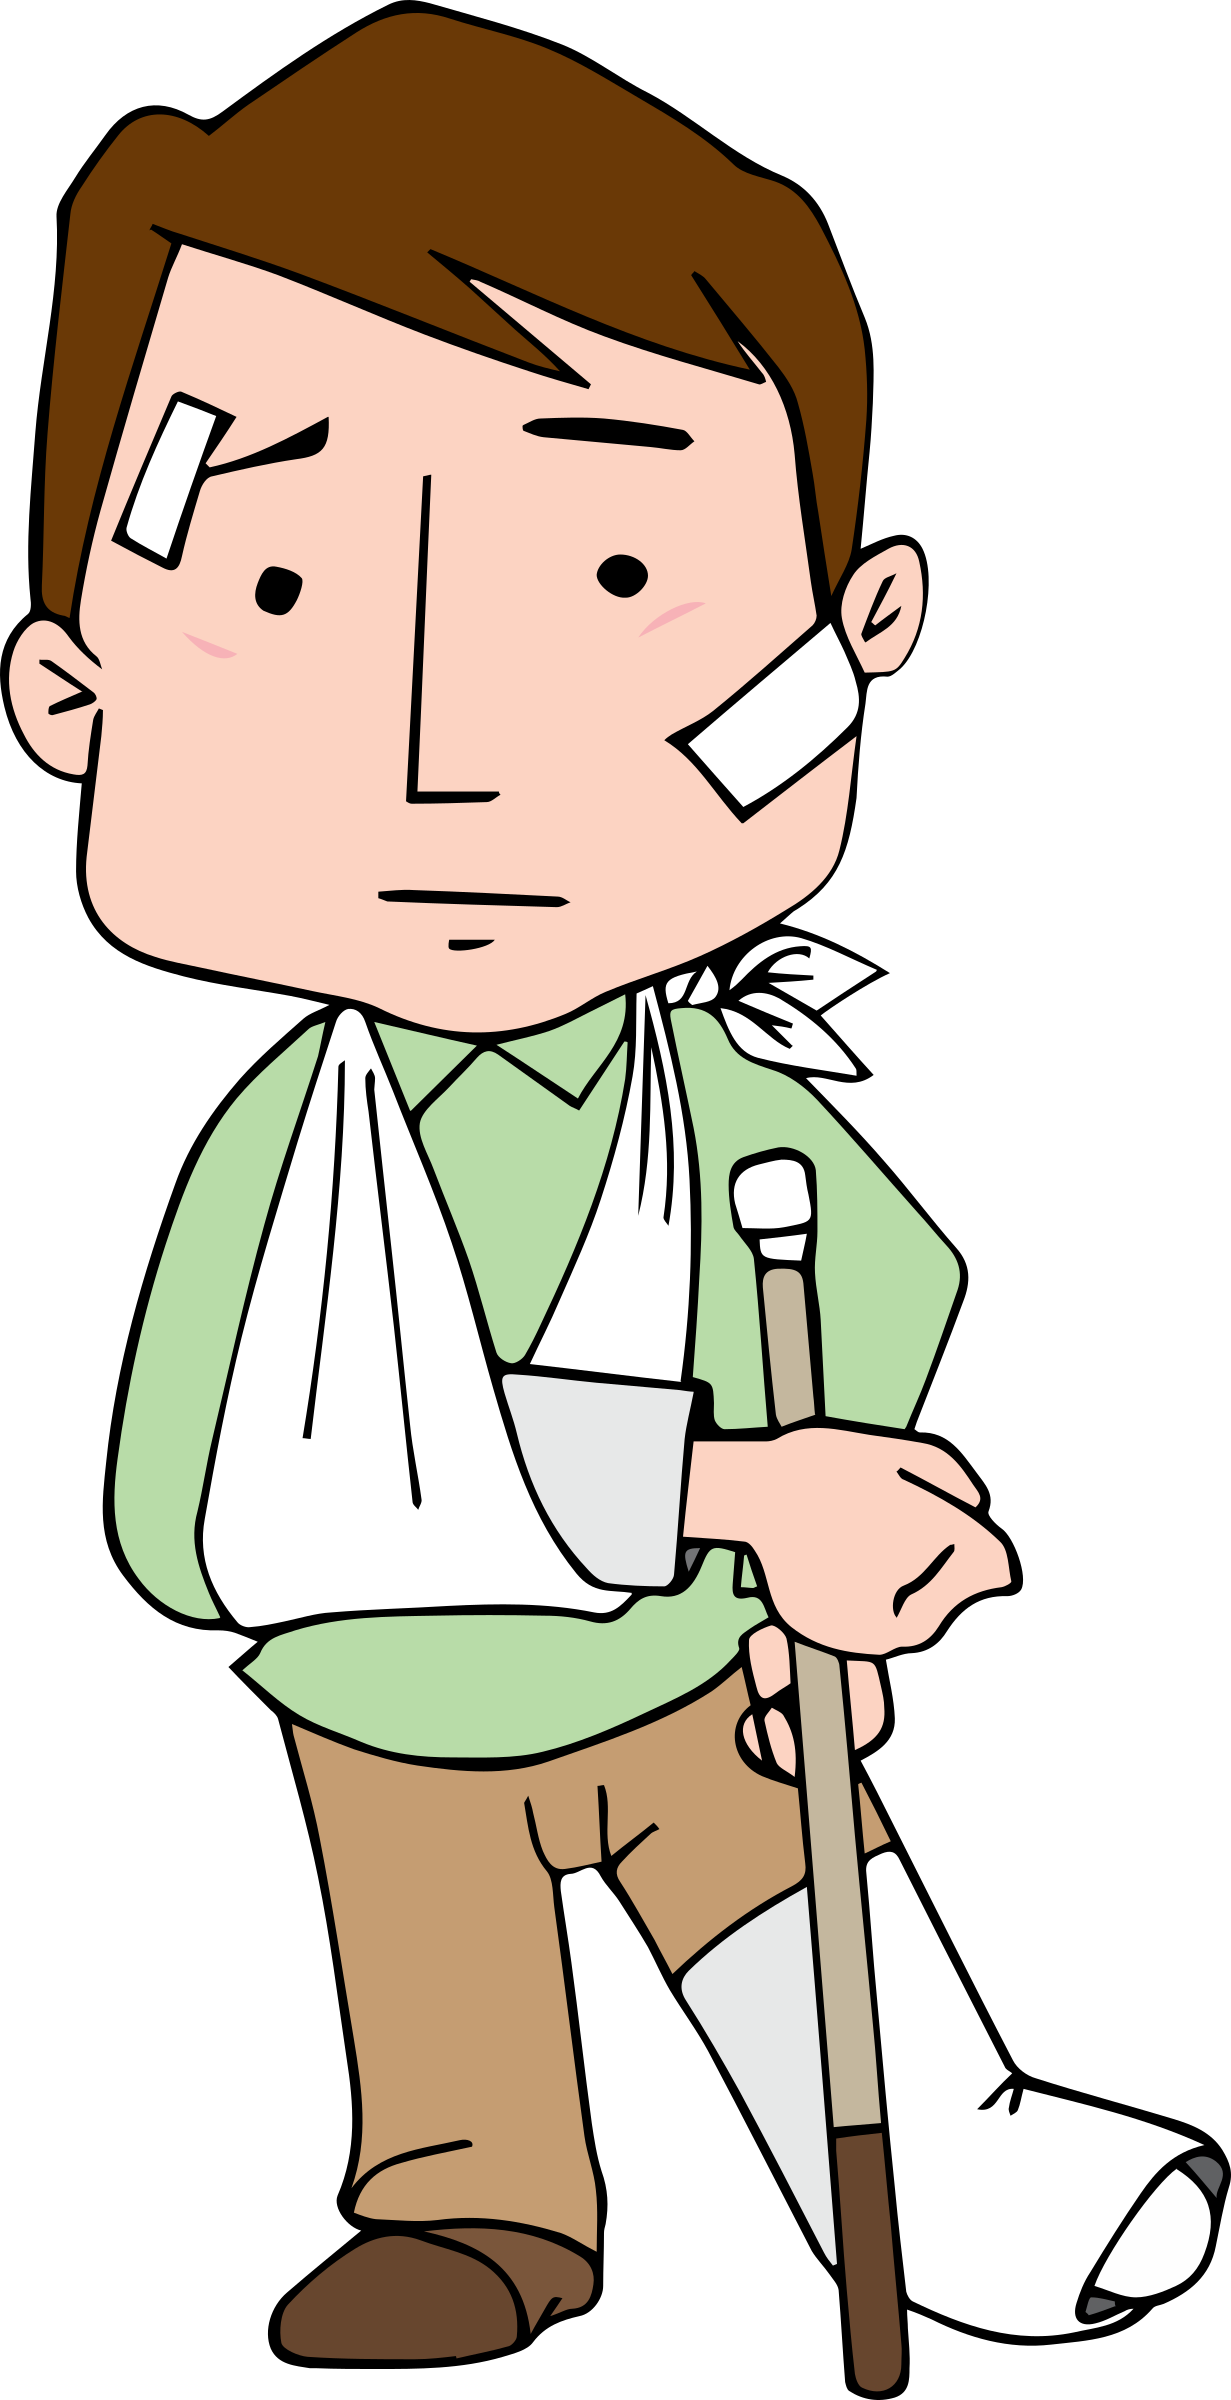 Hurt clipart. Injured big image png